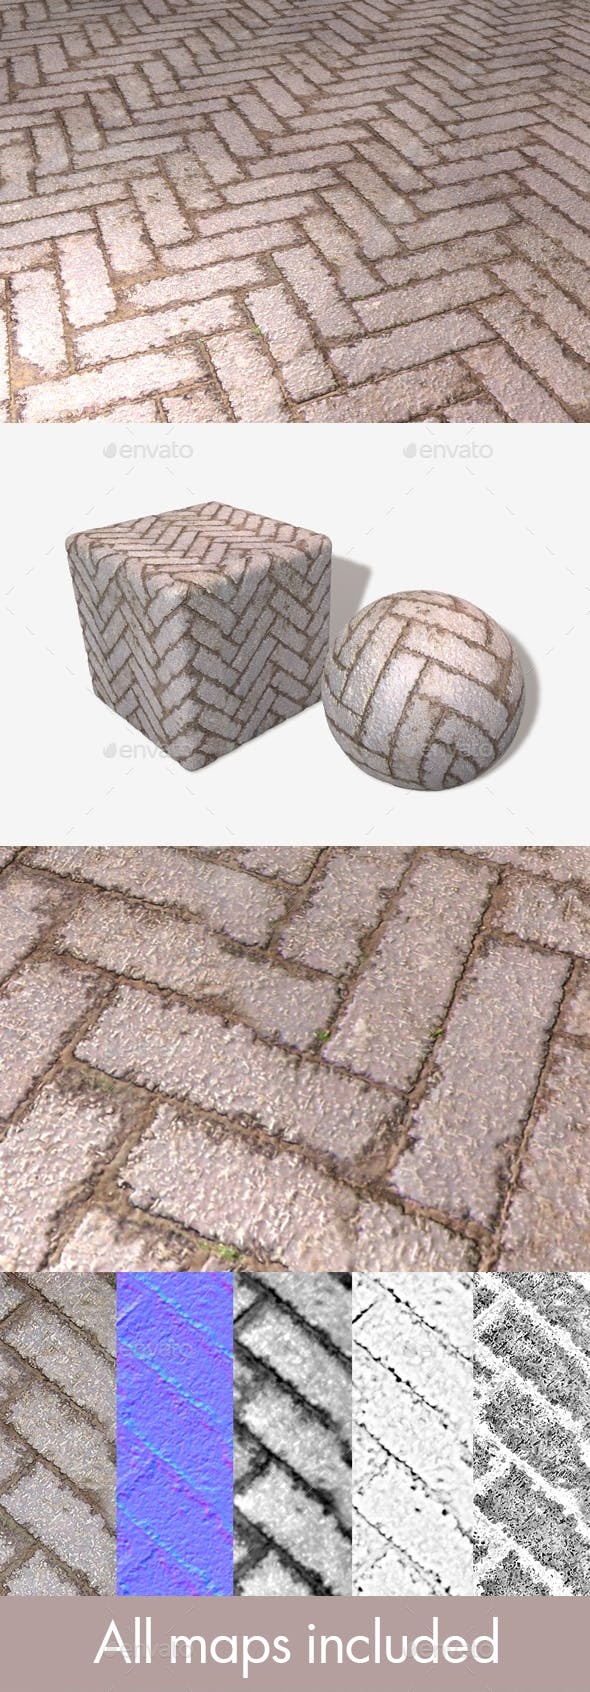 Drying Floor Bricks Seamless Texture - 3DOcean Item for Sale